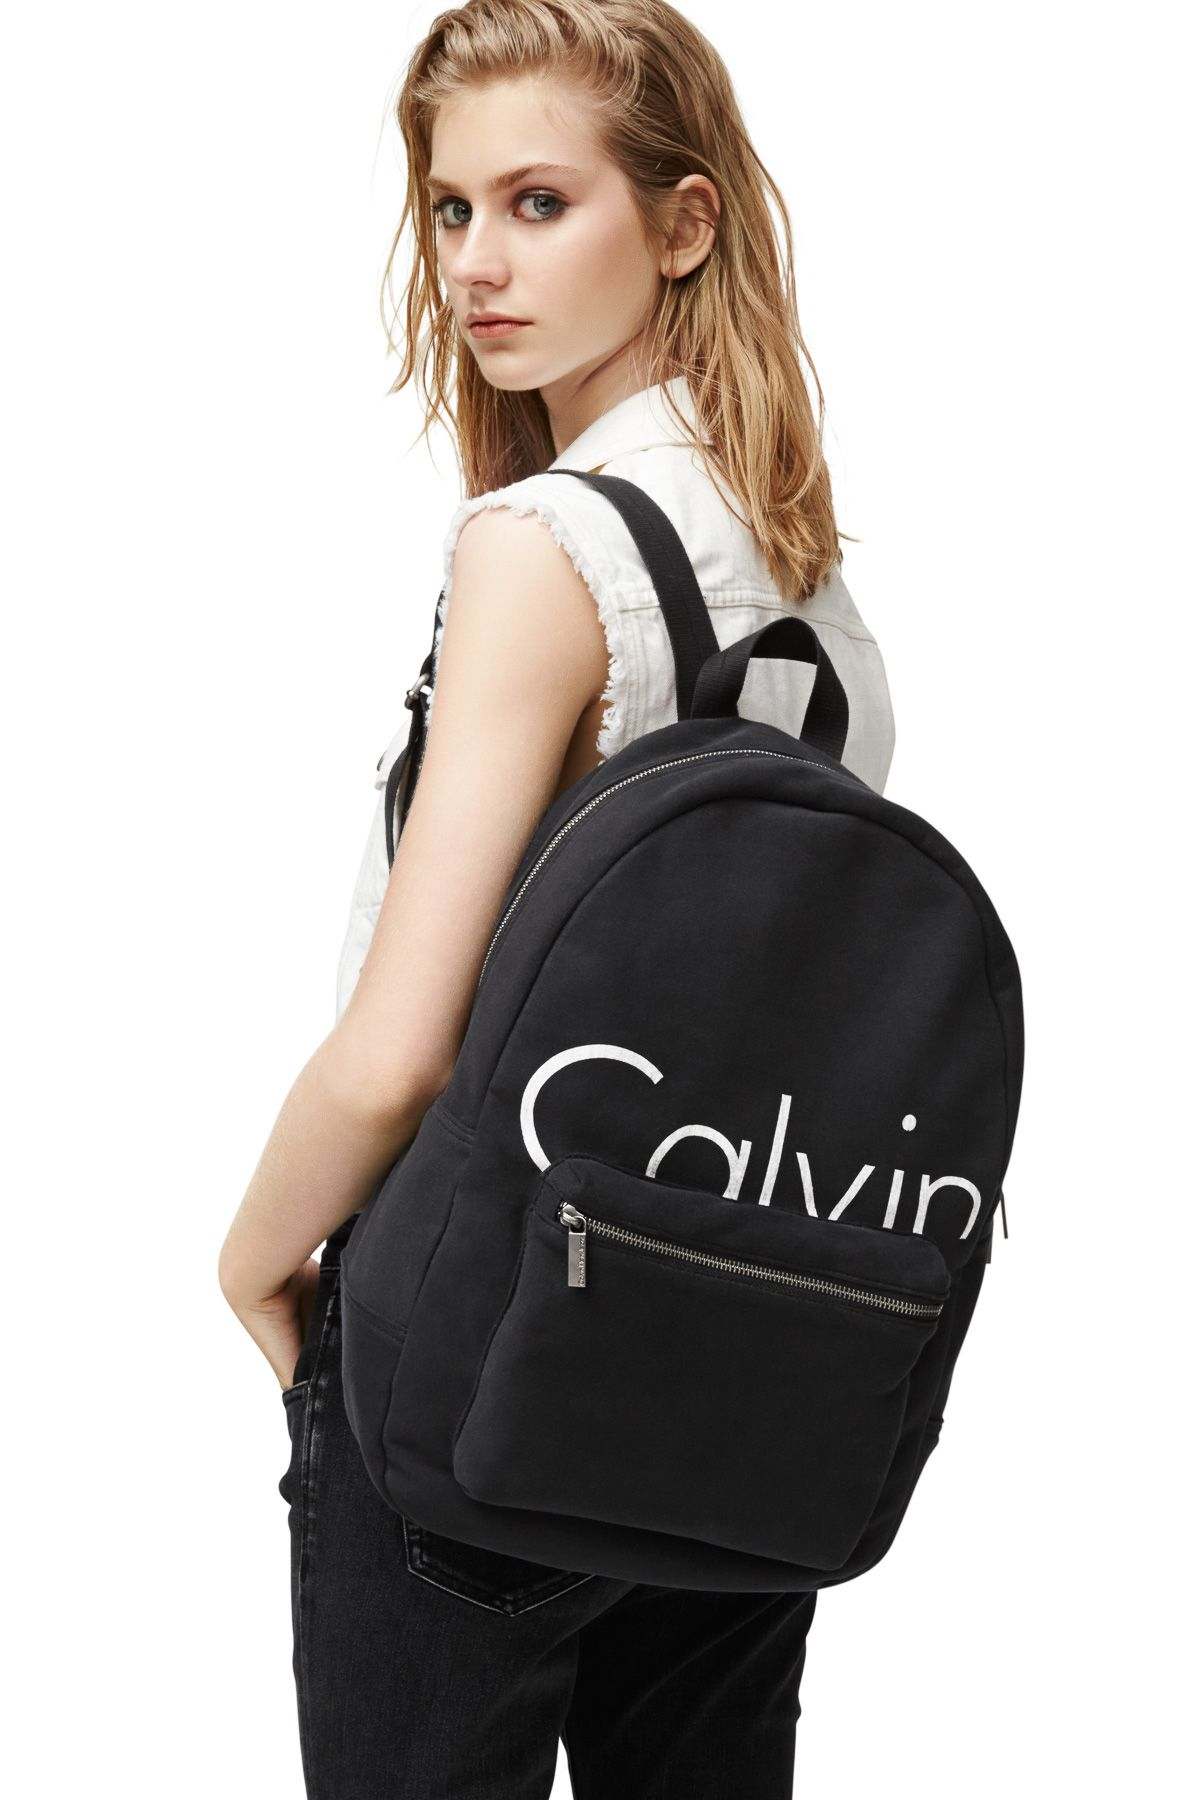 3c54fb3d3389 Pin by Leah Caserta on accessories in 2019 | Klein backpack, Calvin klein  outfits, Calvin klein jeans